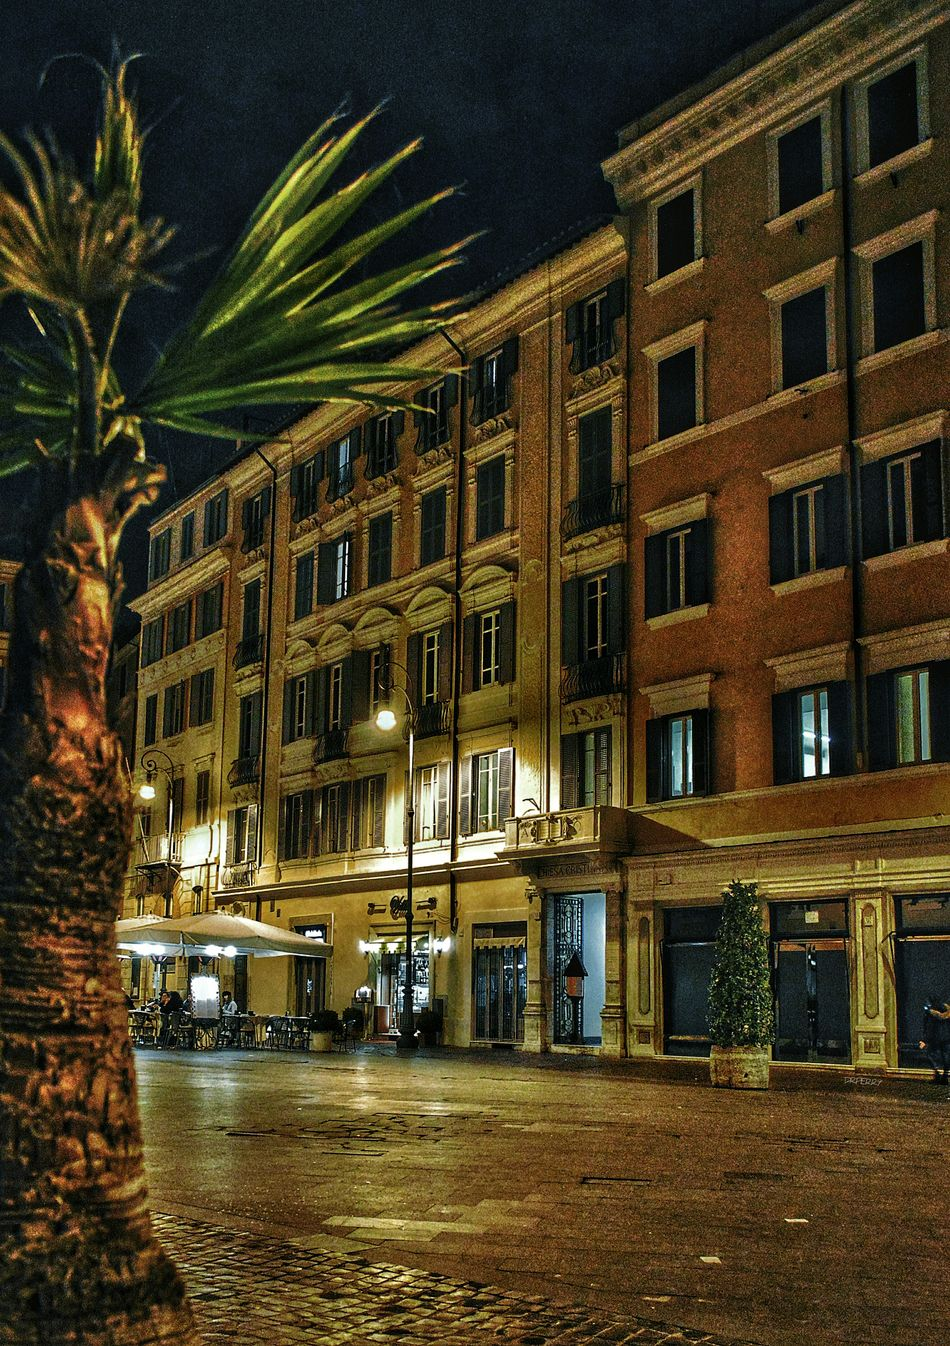 """Piazza Calma"" - Piazza Lorenzo in Lucina - Roma Rome Piazzalorenzoinlucina Architecture Building Exterior Photobydperry Night City Built Structure Travel Destinations Outdoors Cityscape Italia Italy Piazza Illuminated"